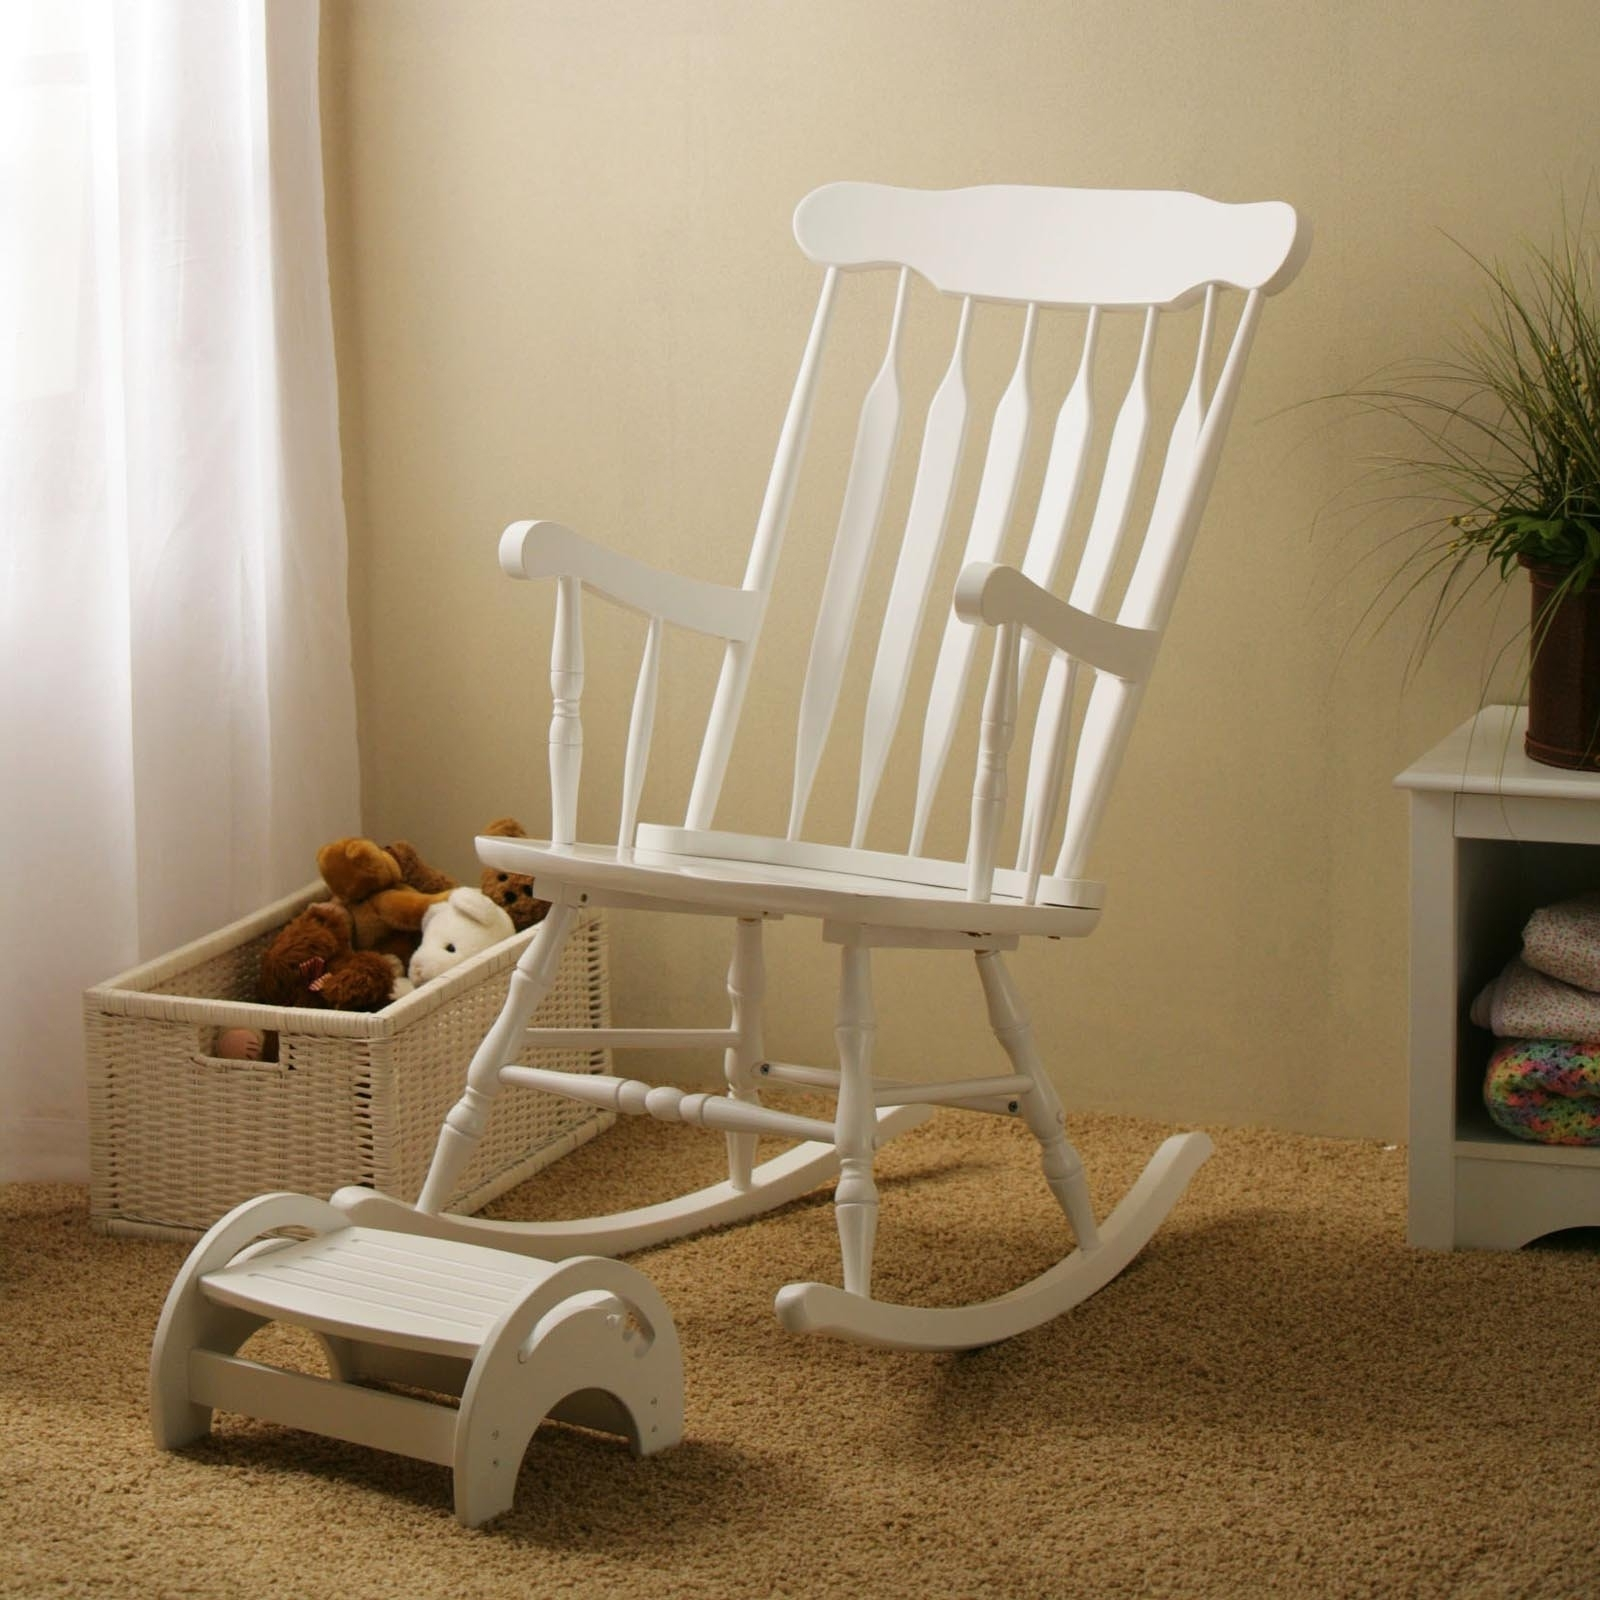 Widely Used Nursery Rocking Chair Melbourne – Nursery Rocking Chair For Mom And Within Rocking Chairs With Footstool (View 5 of 20)